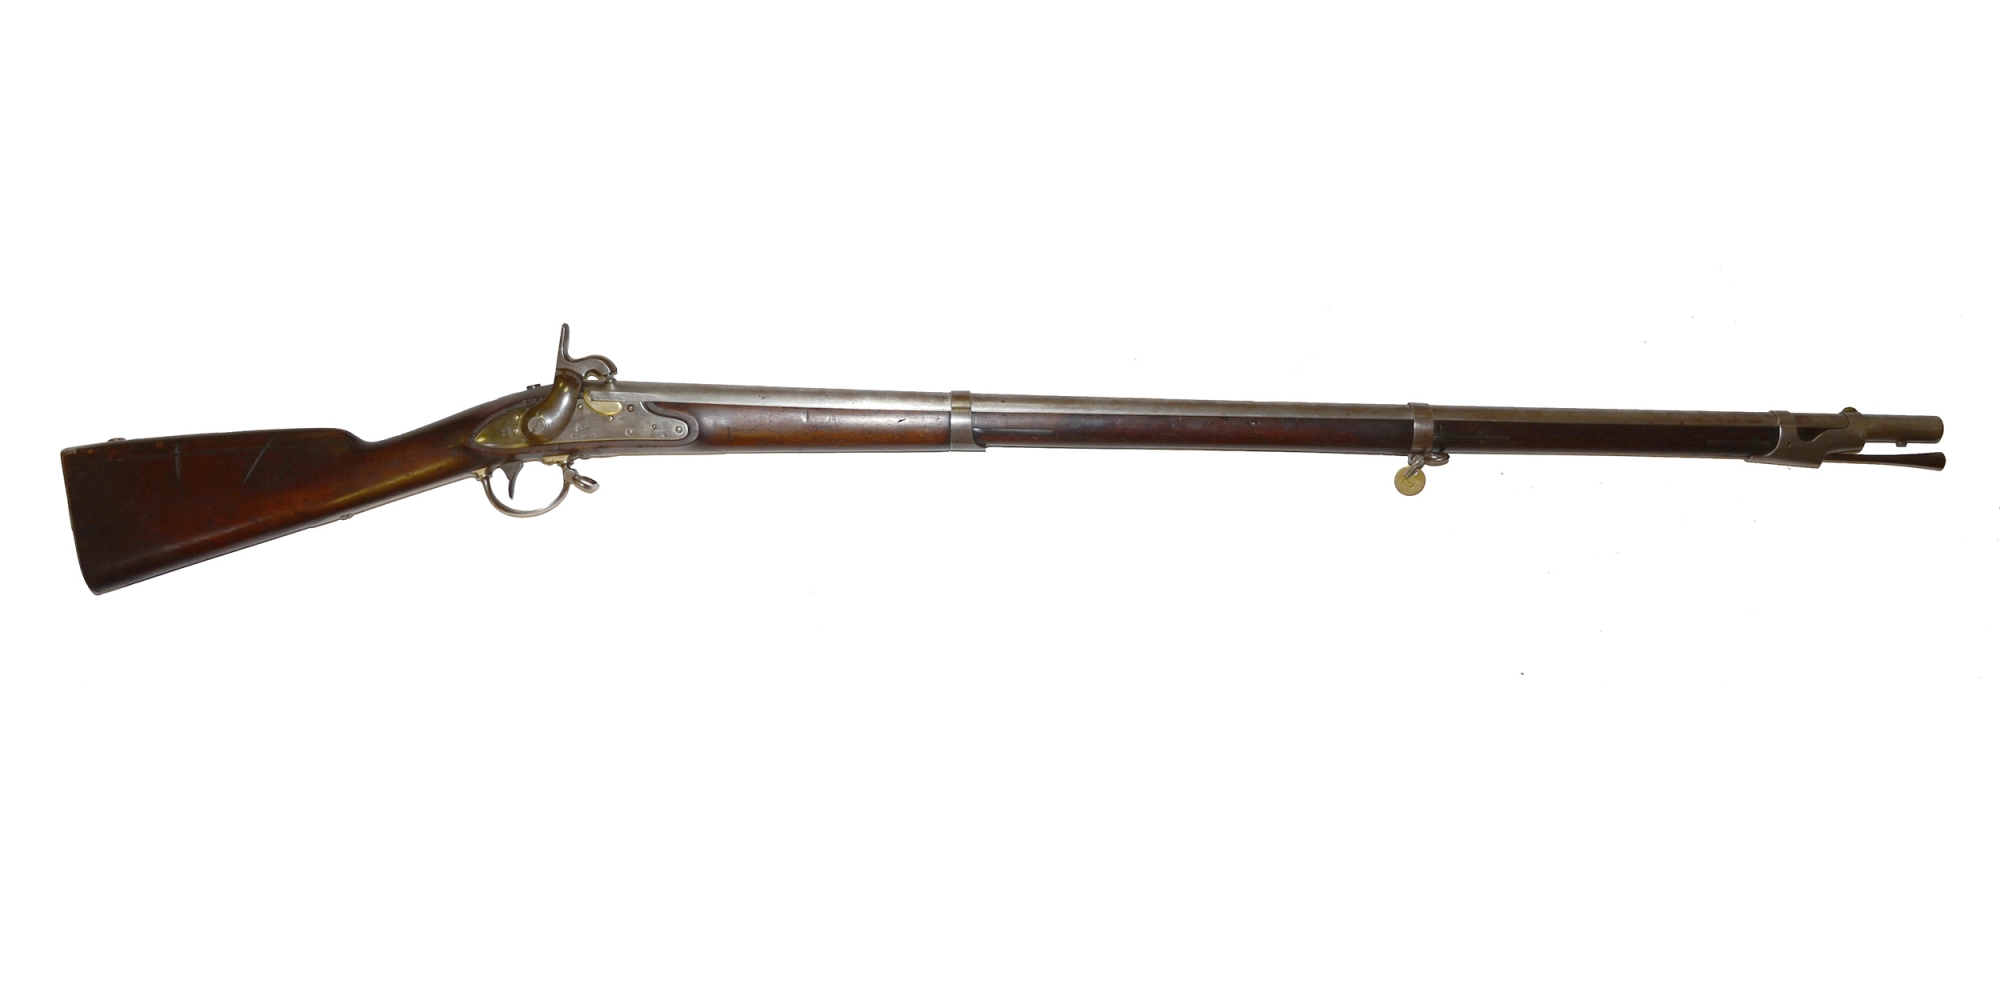 RIFLED POMEROY MODEL 1840 MUSKET CONVERTED TO PERCUSSION